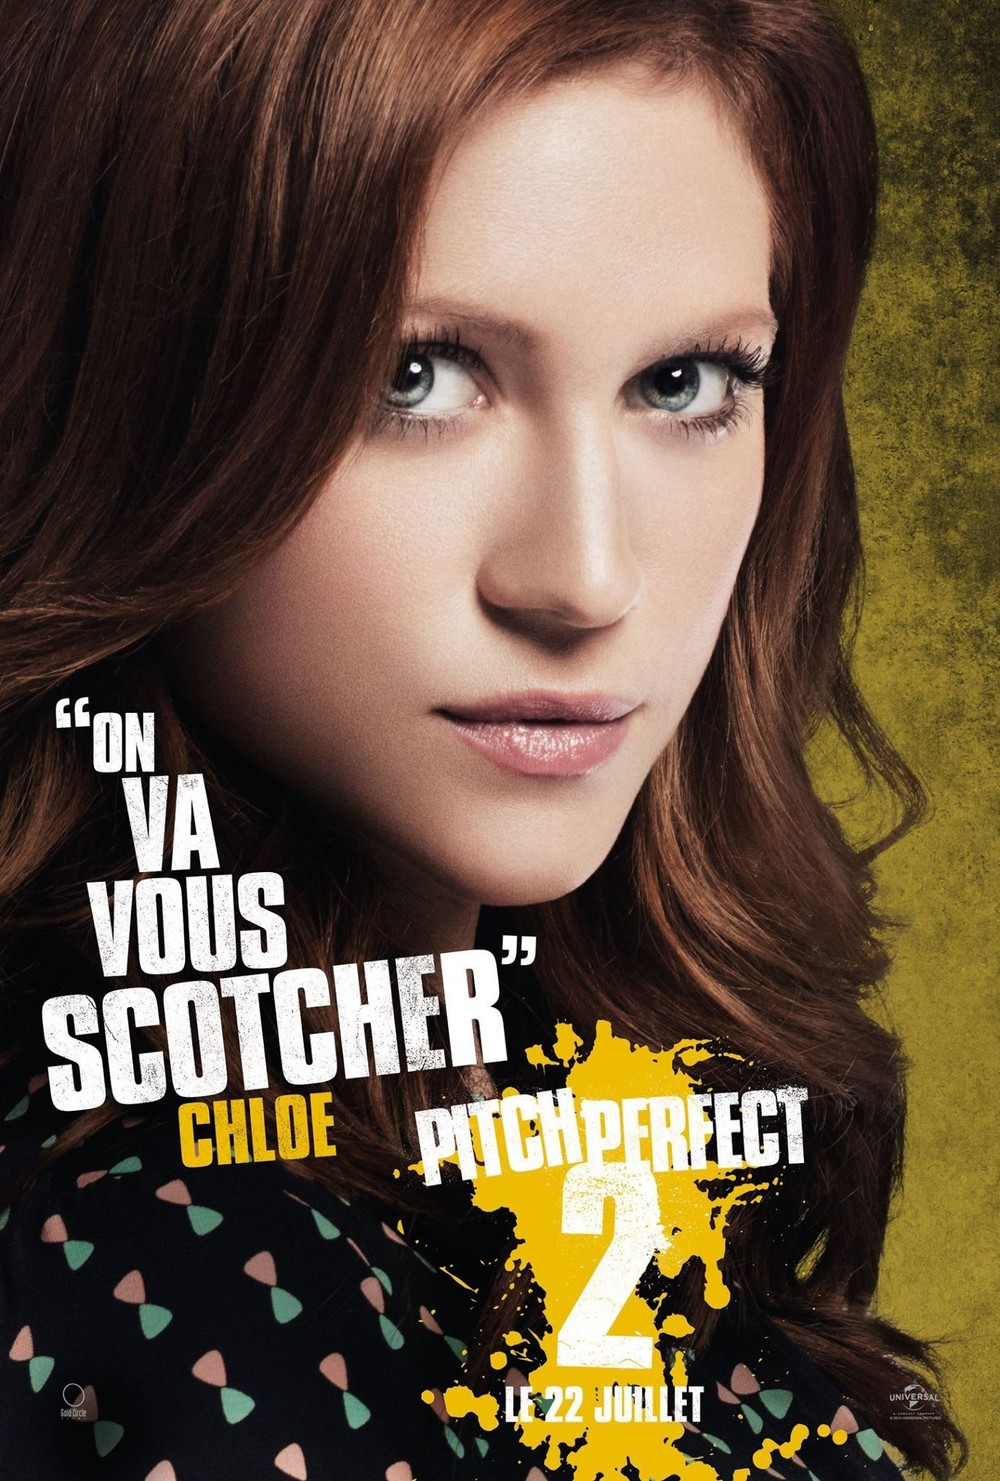 Pitch perfect 2 dvd release date in Sydney